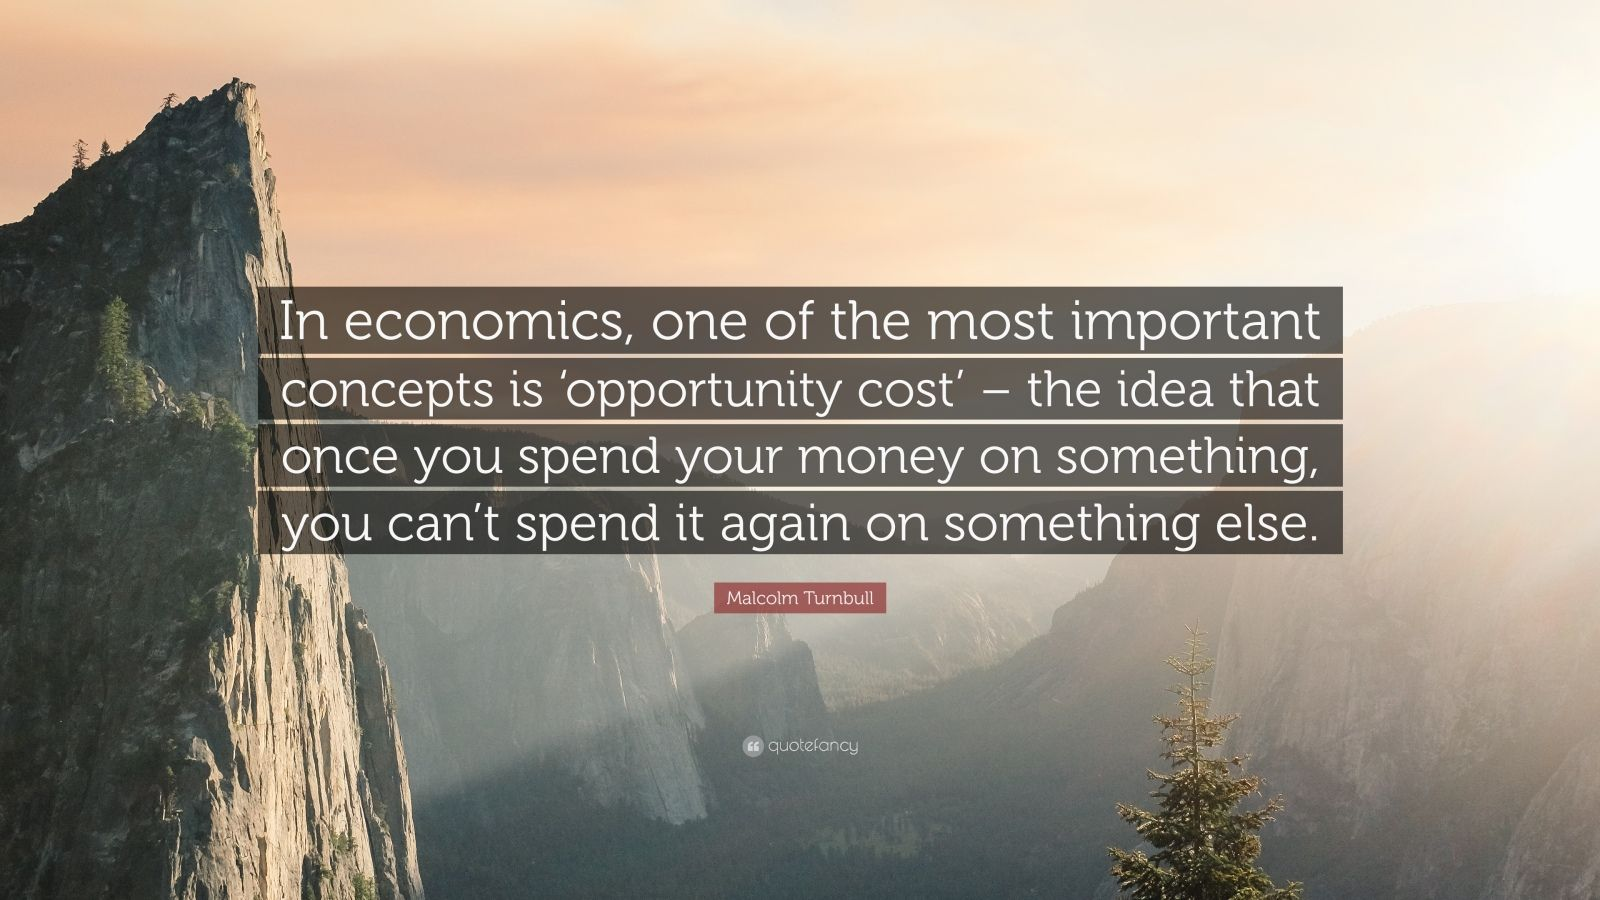 """Malcolm Turnbull Quote: """"In economics, one of the most important concepts is 'opportunity cost' – the idea that once you spend your money on something, you can't spend it again on something else."""""""